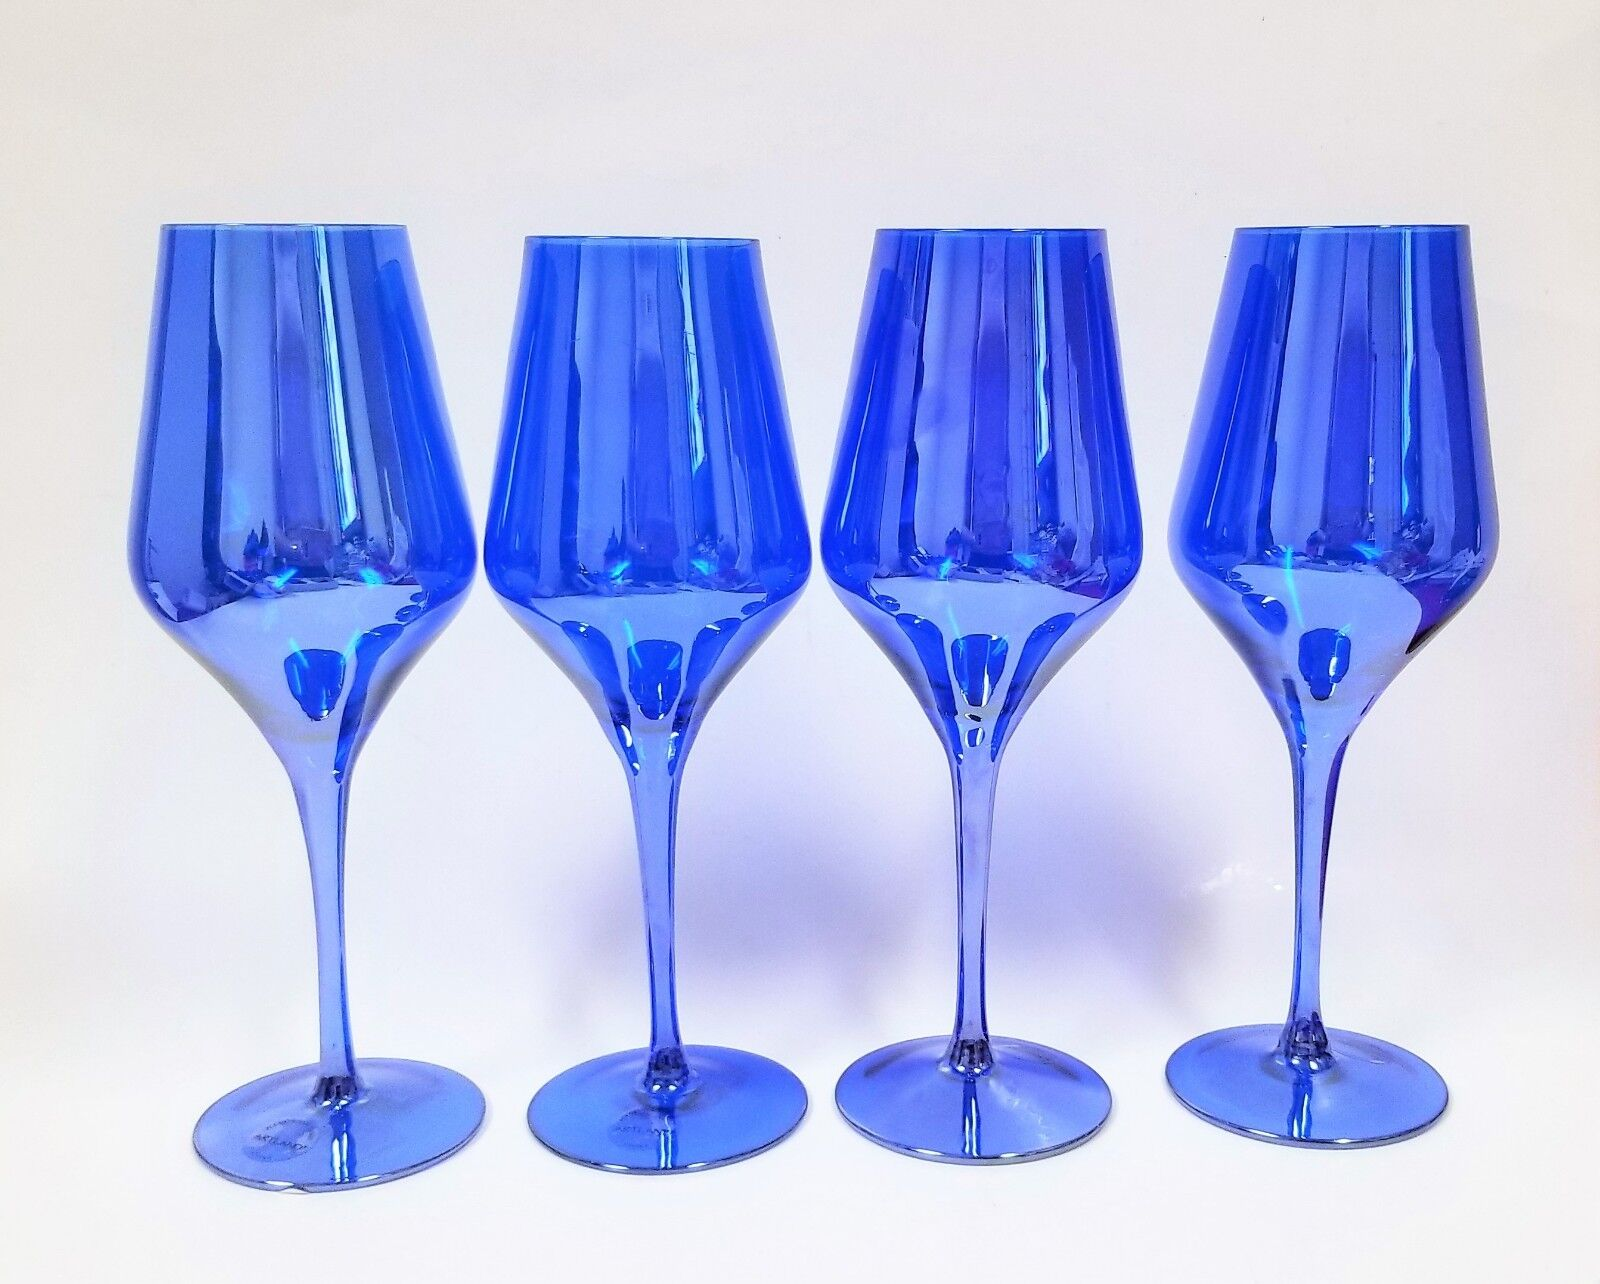 SET OF 4 ARTLAND REFLECTIV COBALT,ROYAL bleu WINE,LUSTER GOBLET+STEM GLASS 16 OZ